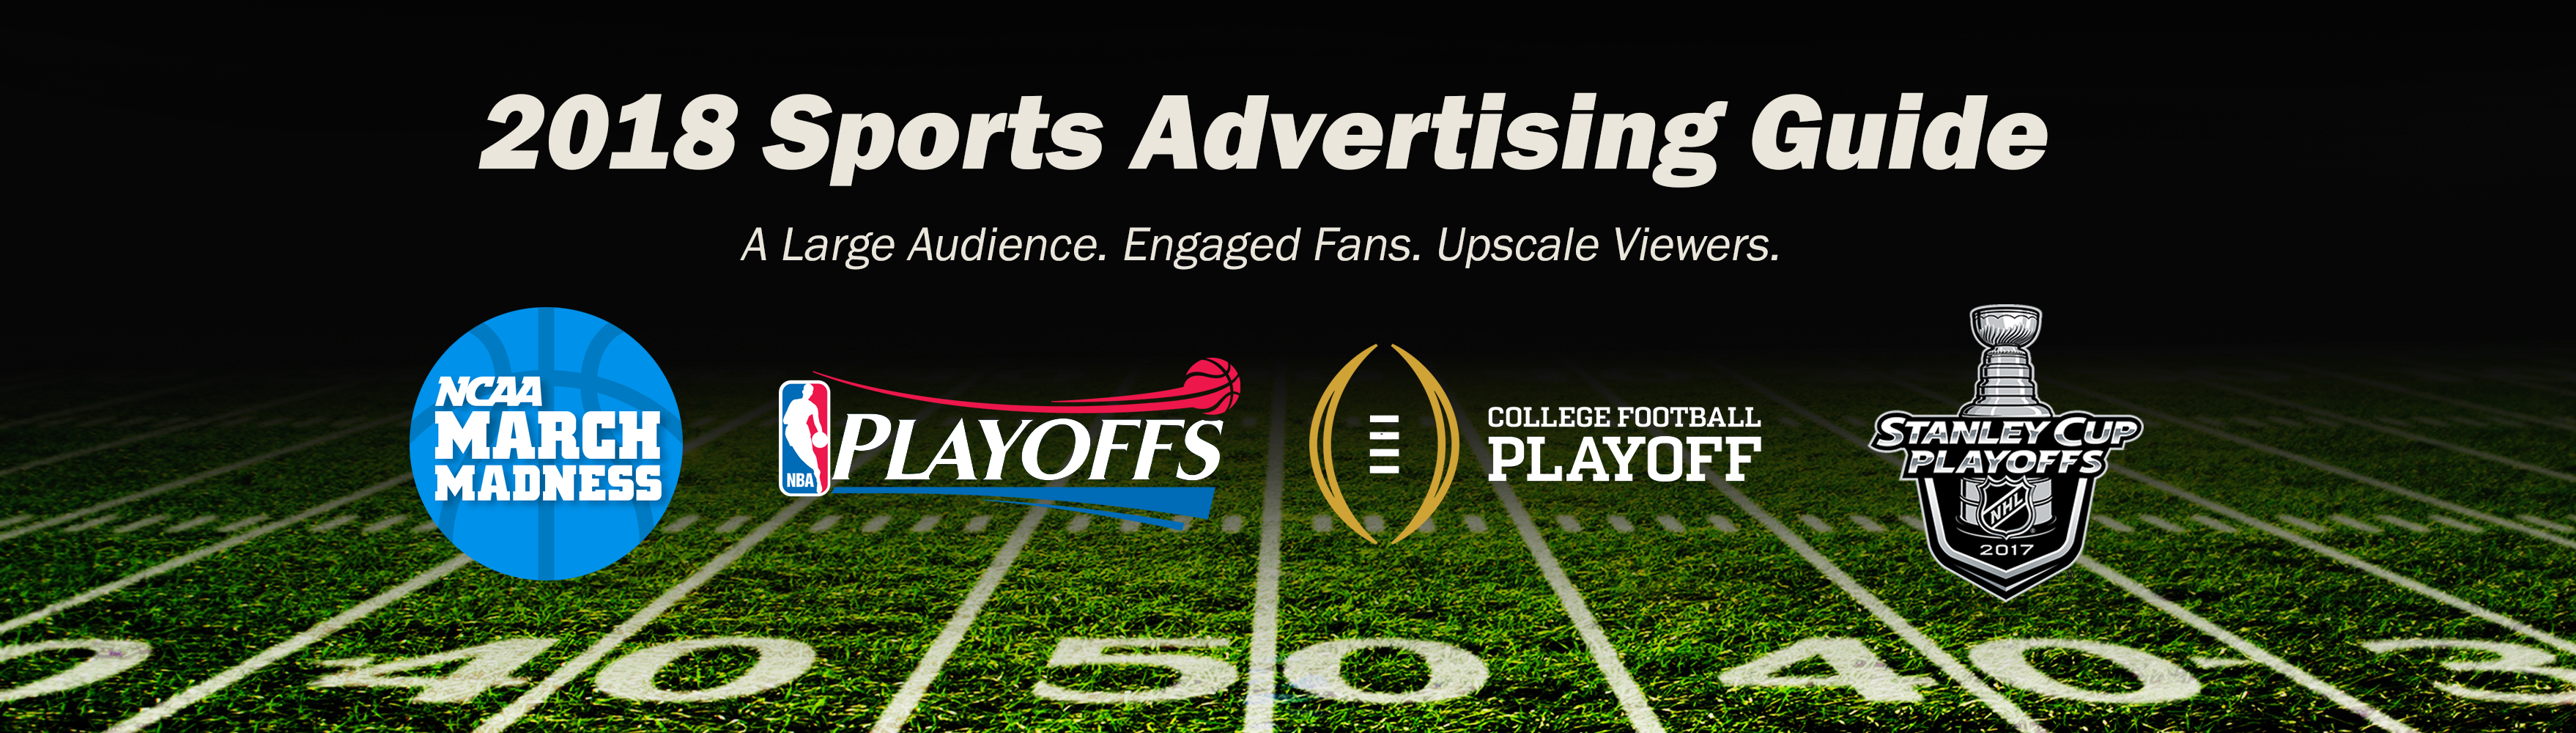 sports landing page header3.png